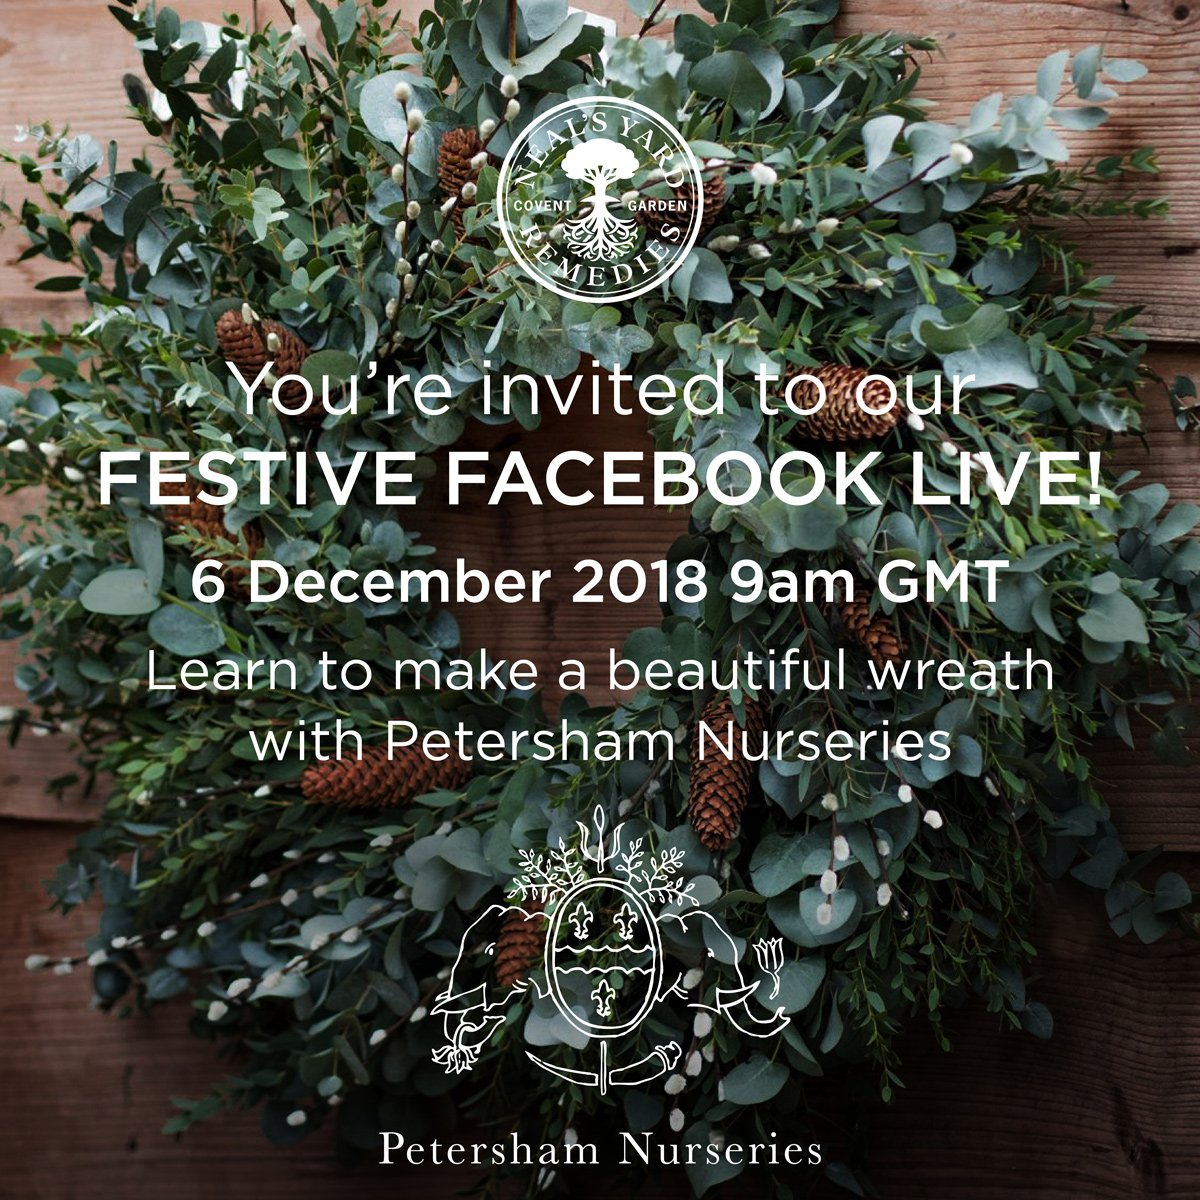 Petersham Nurseries A Twitter You Re Invited To Our Festive Facebook Live Next Thursday 6th December 9am Gmt Join Our Very Own Amanda Brame And Nyr Official Resident Expert Tipper Lewis As They Show